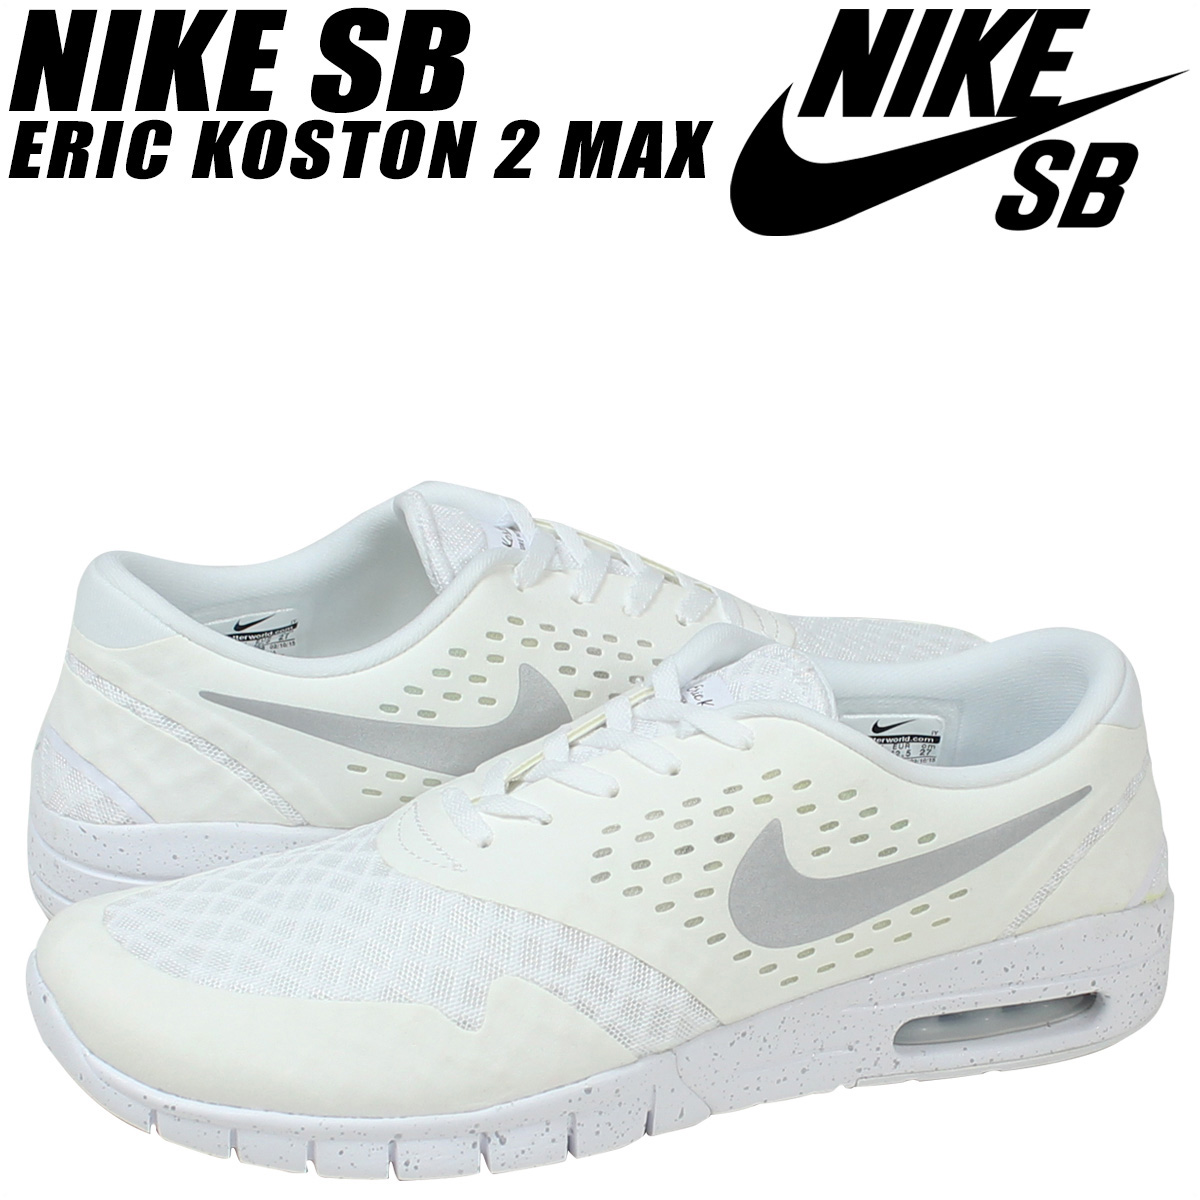 The origin of the name comes from the Greece myths of one Jeff Johnson saw  in the dream, victory goddess Nike (Nike).